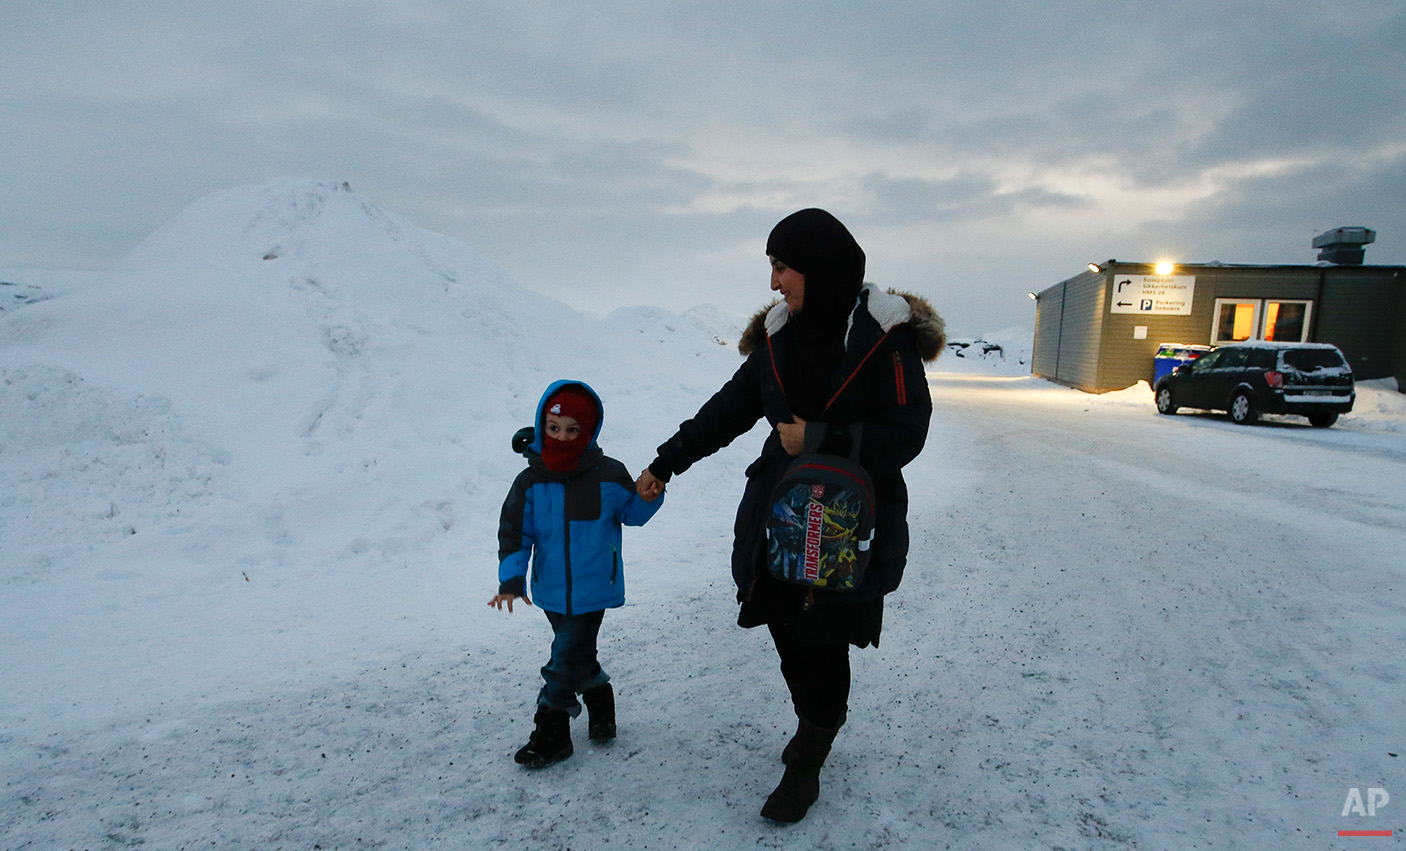 In this photo taken Thursday, Feb. 4, 2016 in Hammerfest, northern Norway, refugee Huda al Haggar and her son Omar from Sanaa in Yemen talk to the Associated Press at the northernmost refugee camp in the world. Waiting for their asylum claims to be processed, hundreds of people in emergency shelters in Hammerfest and neighboring towns are slowly getting used to the extreme climate and unfamiliar customs of the High North. They say they have adapted to the cold _ the temperature rarely drops below minus 10 degrees C (14 F) along the coast, though it gets much colder further inland. It's the darkness that throws them off. (AP Photo/Alastair Grant)